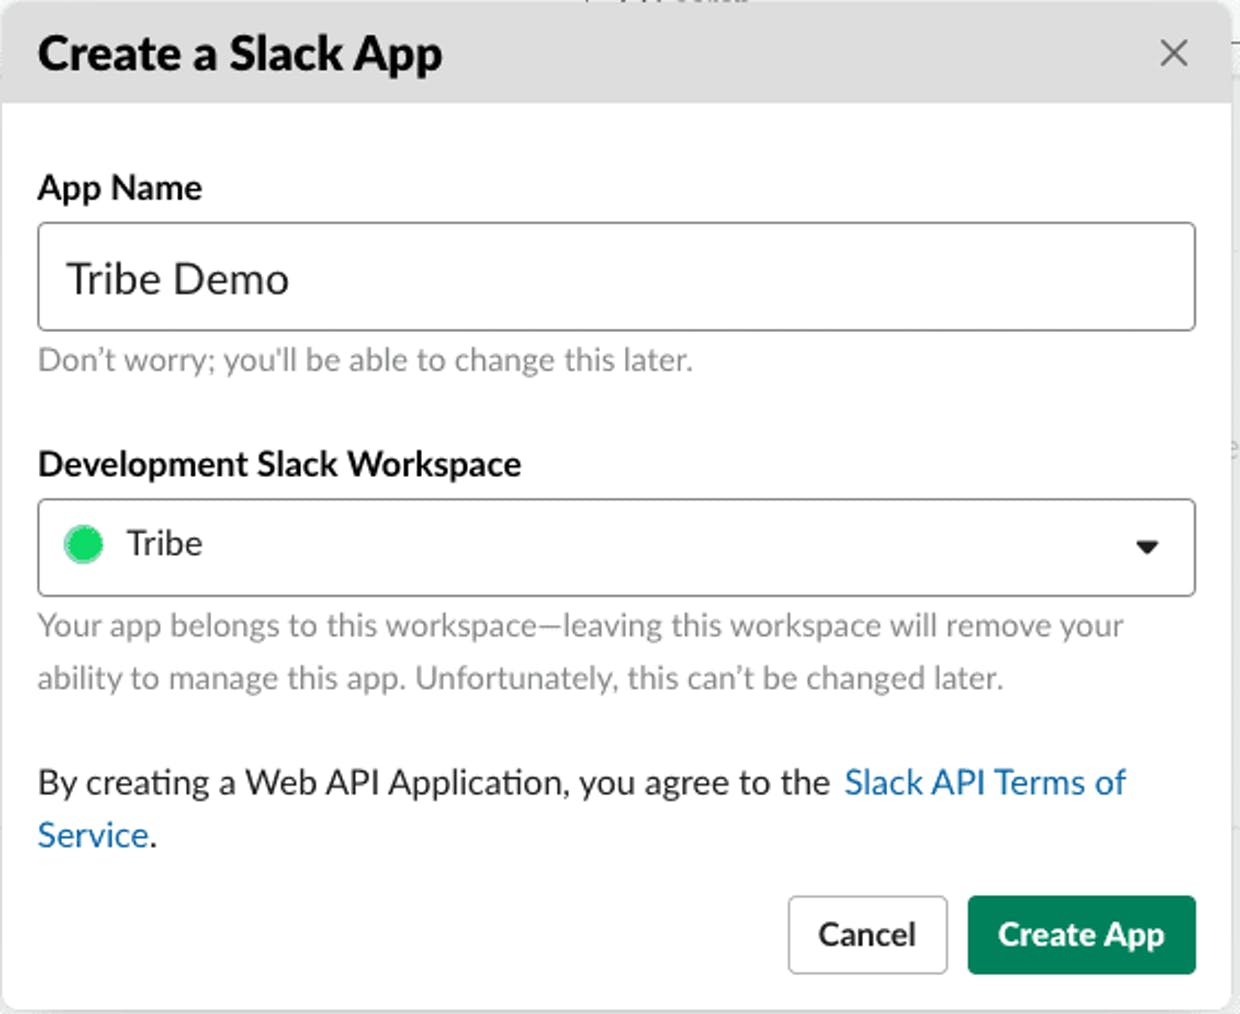 How to activate Slack Social Login on my community?